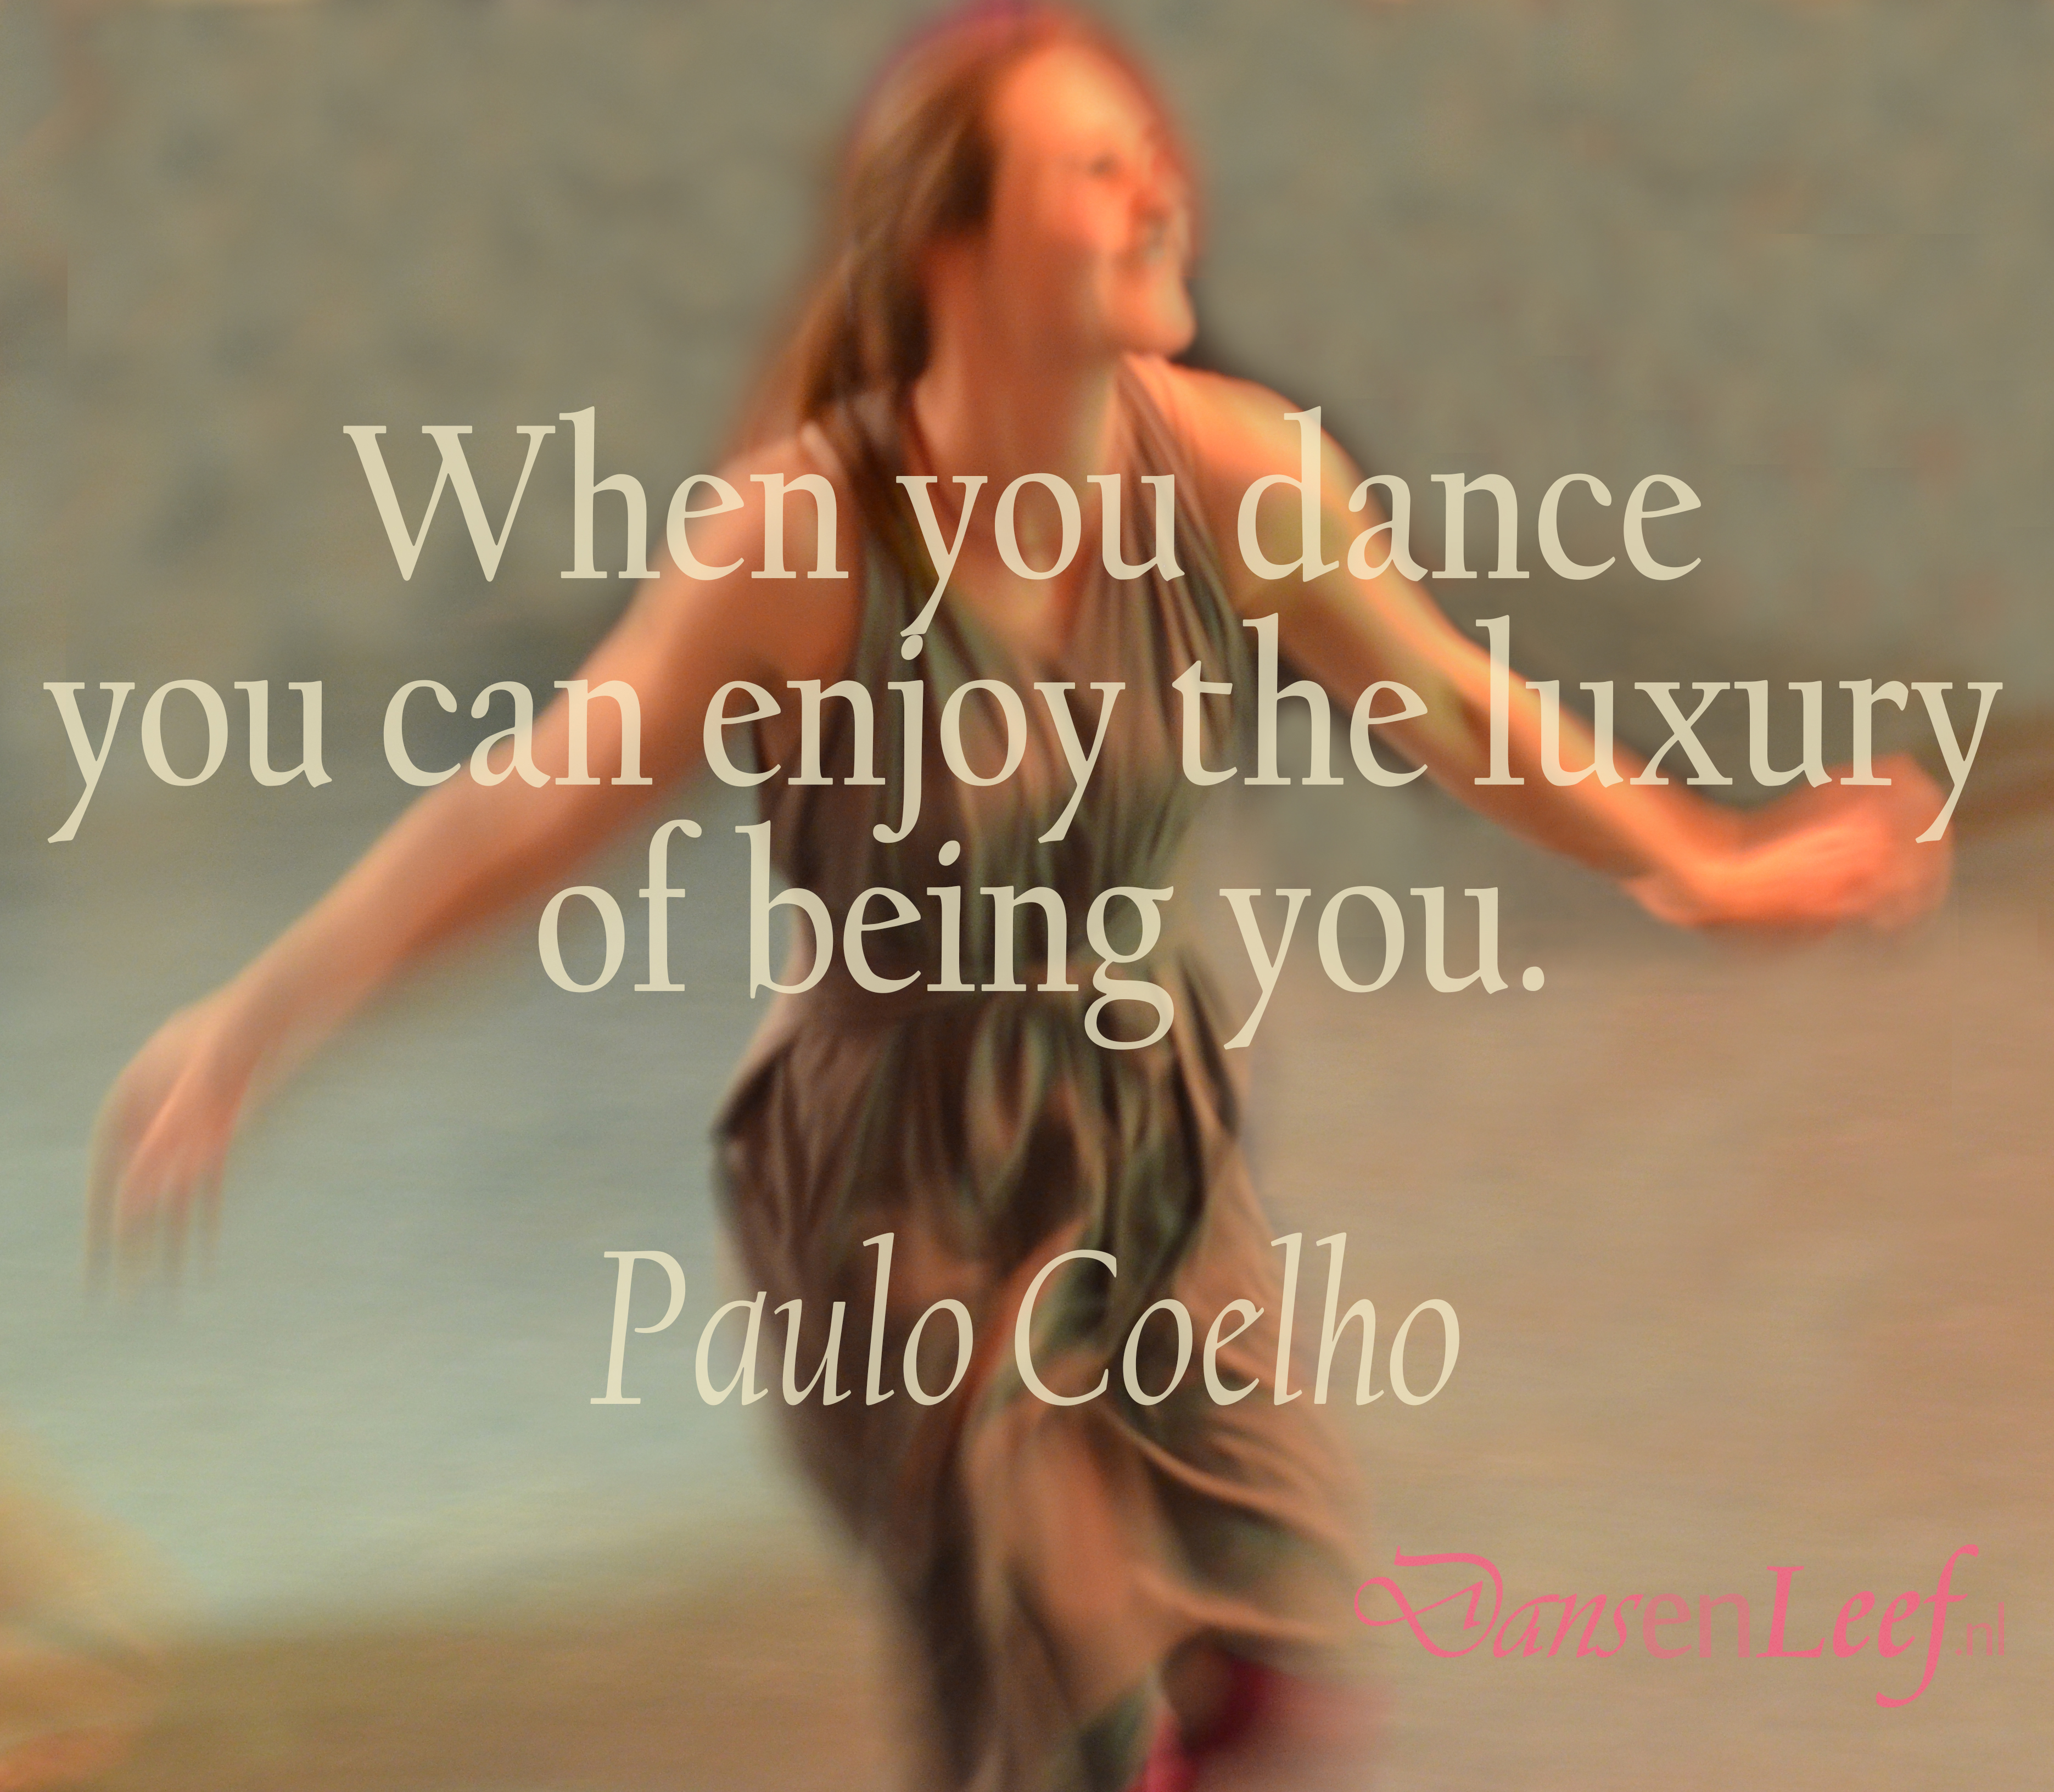 When you dance you can enjoy the luxury  of being you. quote: Paulo Coelho  Foto: Rob Overgaauw Bewerking: Geny Wuestman